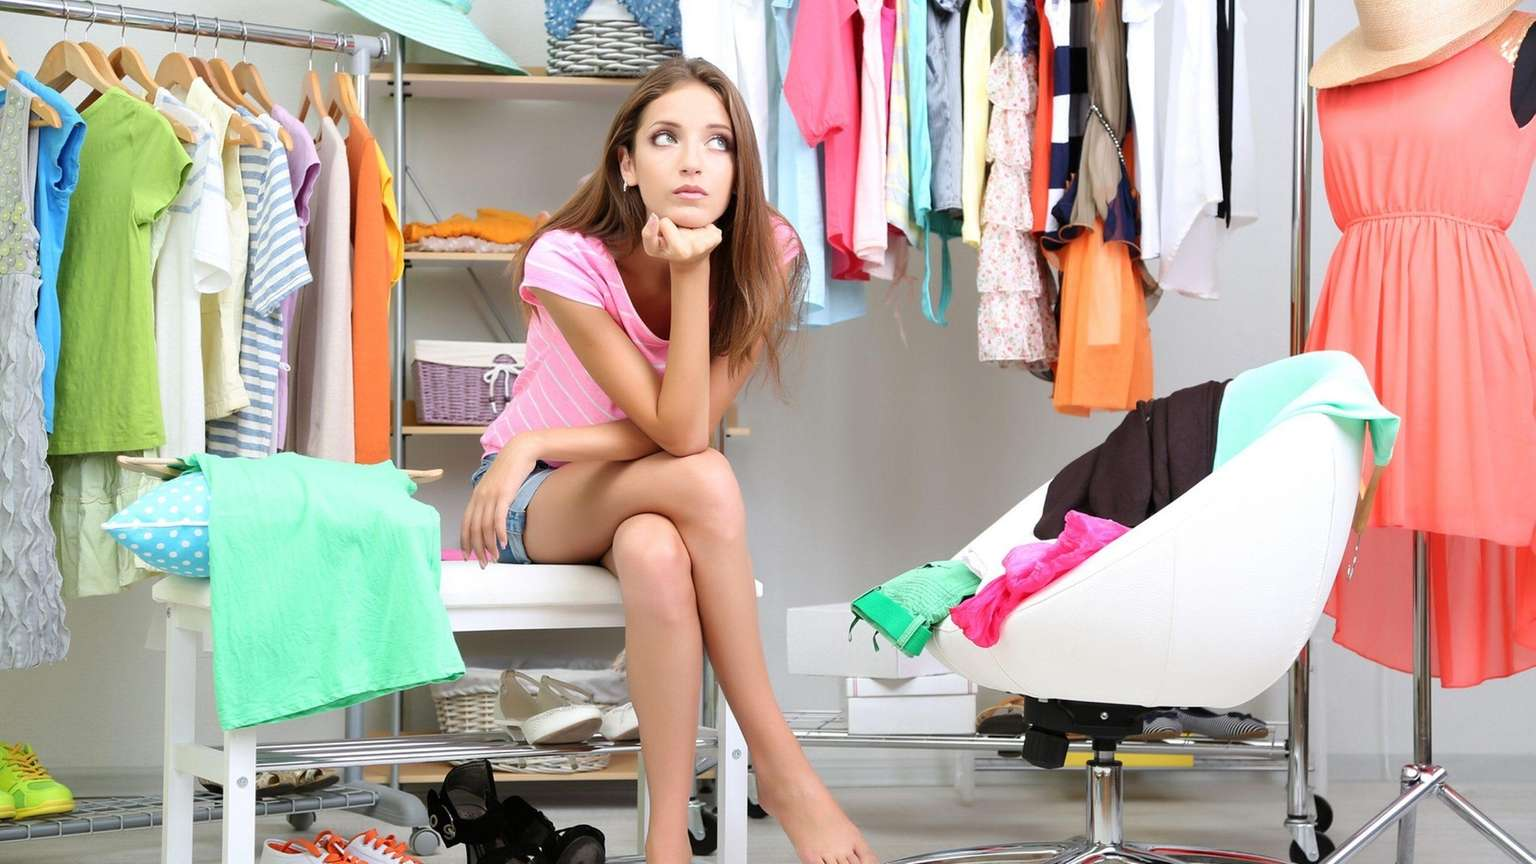 Items <b>NOT</b> to buy for college